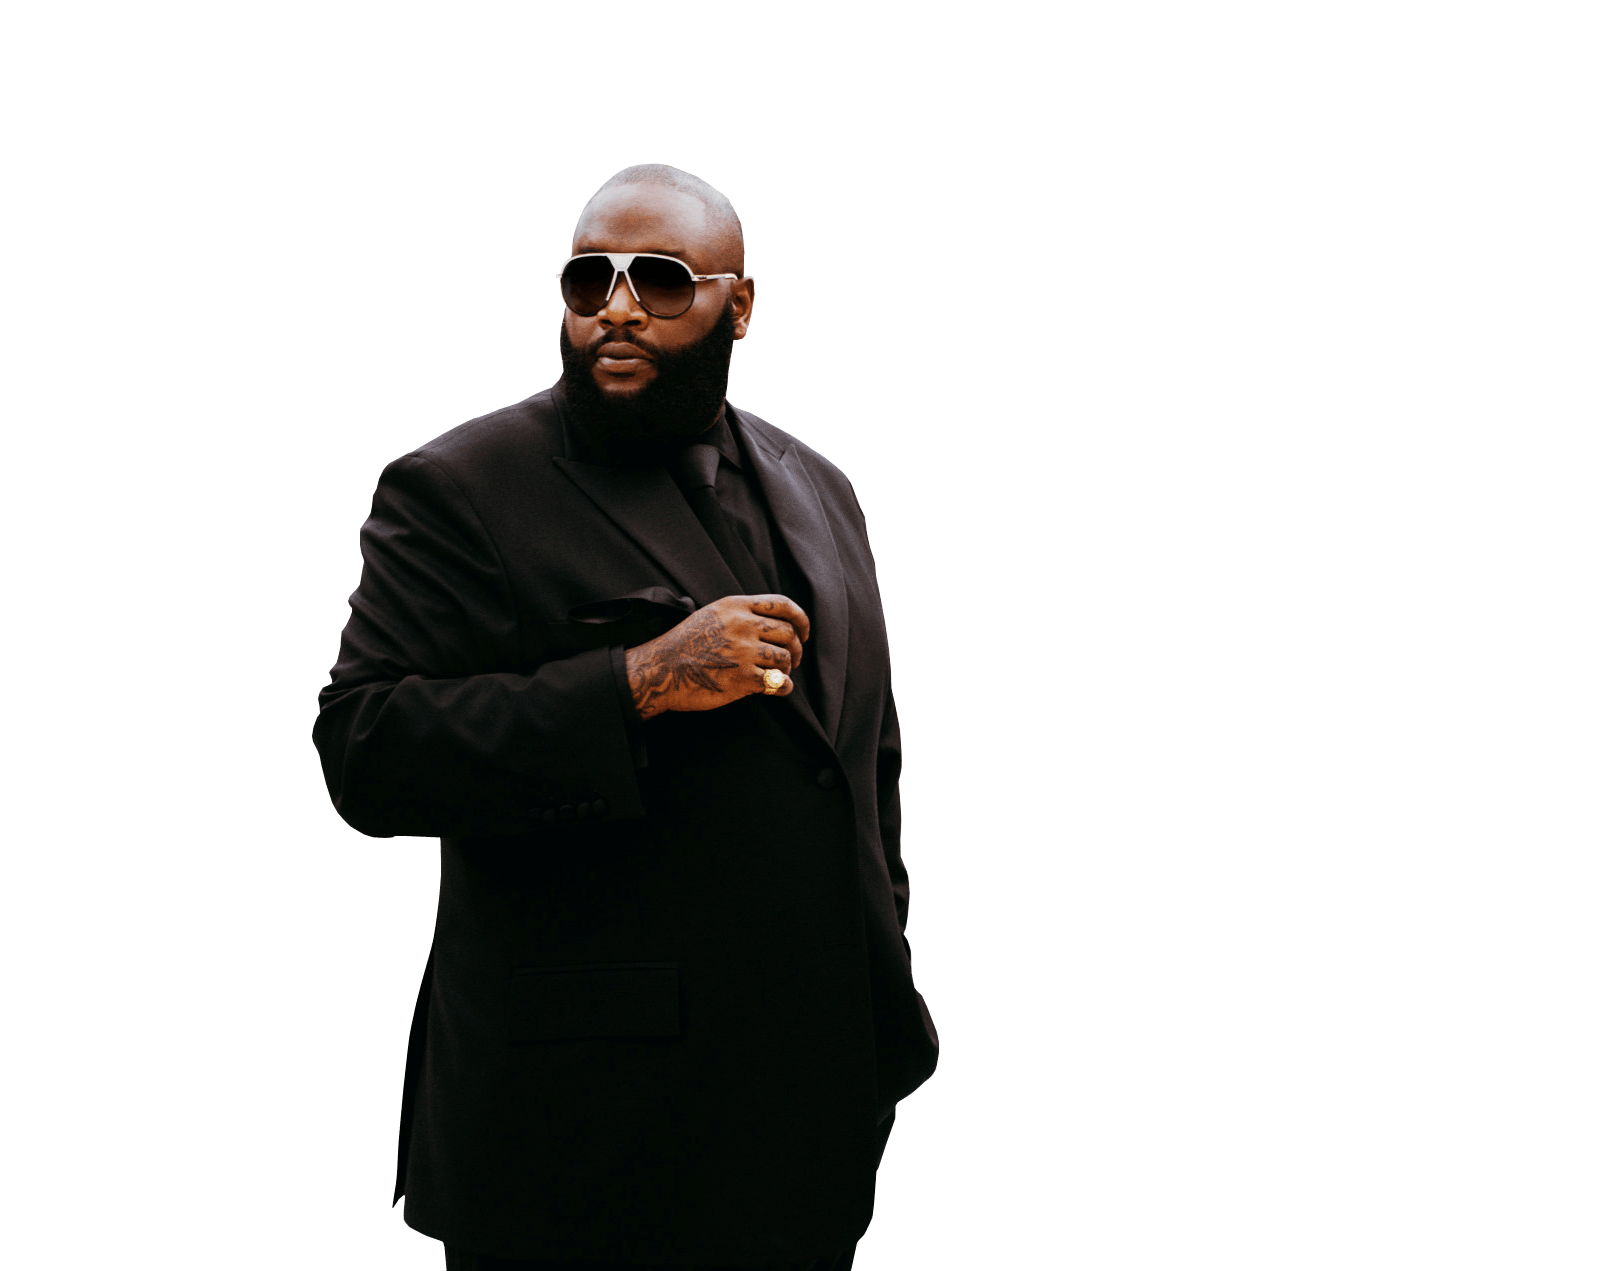 banner black and white Wallpapers wallpaper cave gangsta. Ms drawing rick ross